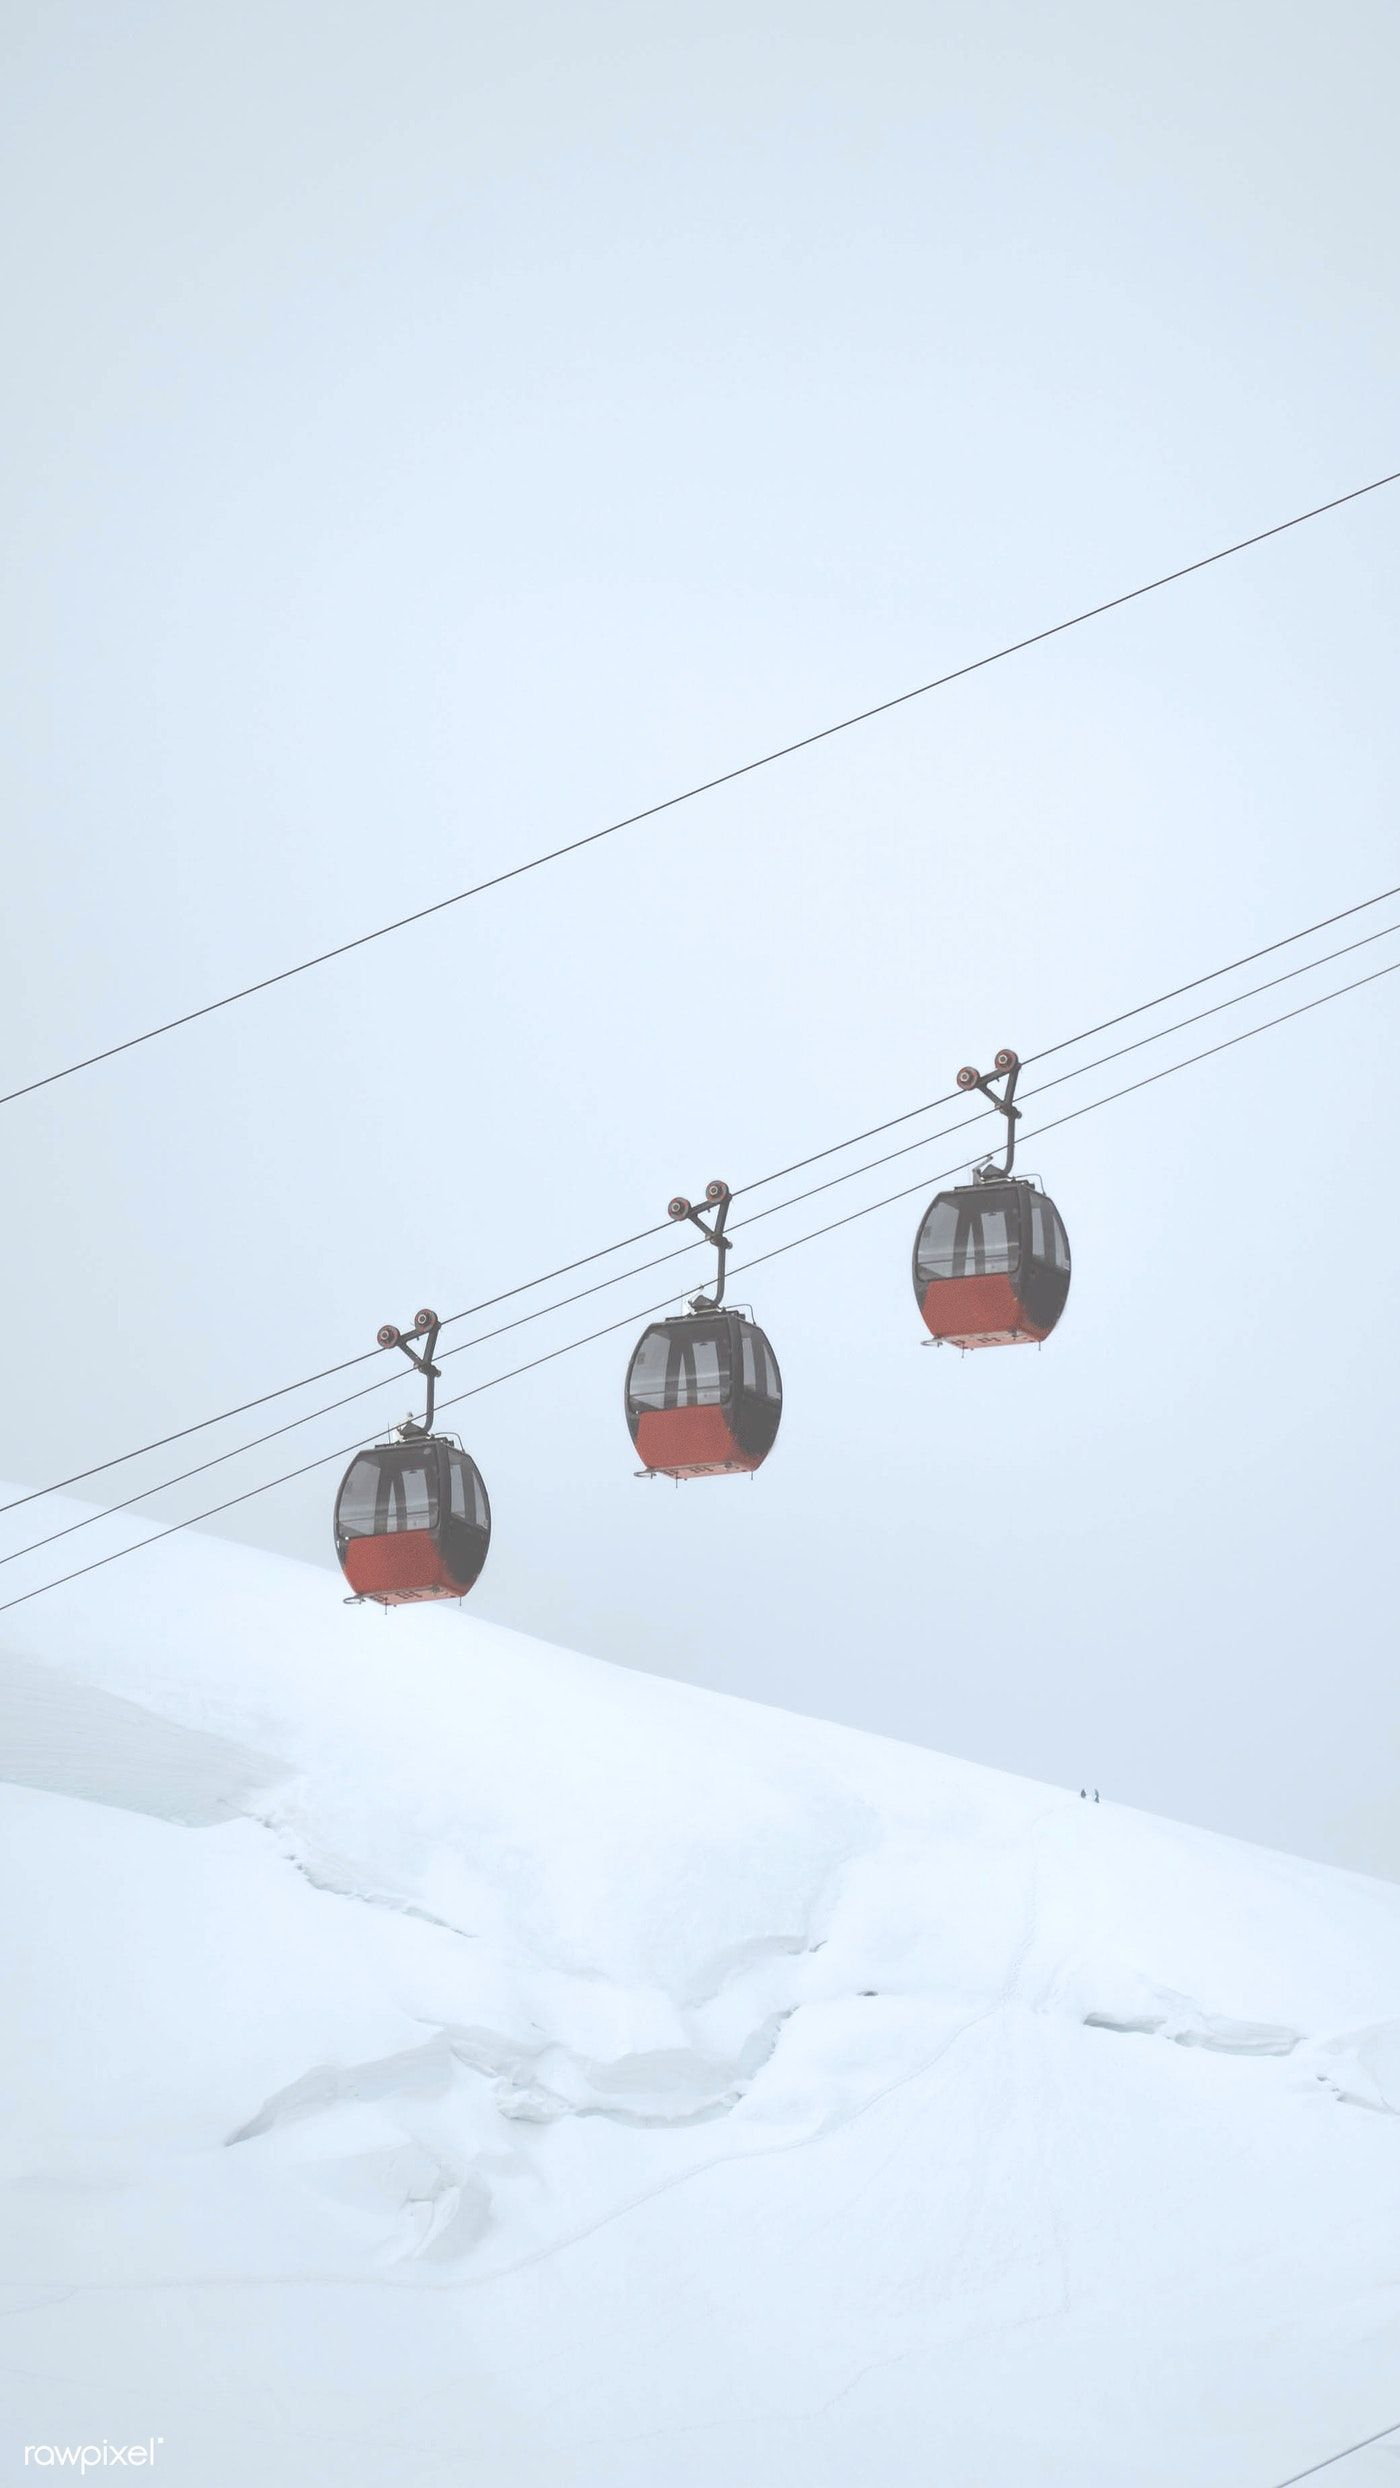 Cable Car Passing Through The French Alps Mobile Phone Wallpaper Free Image By Rawpixel Com Jack Anstey French Alps Alps Phone Wallpaper